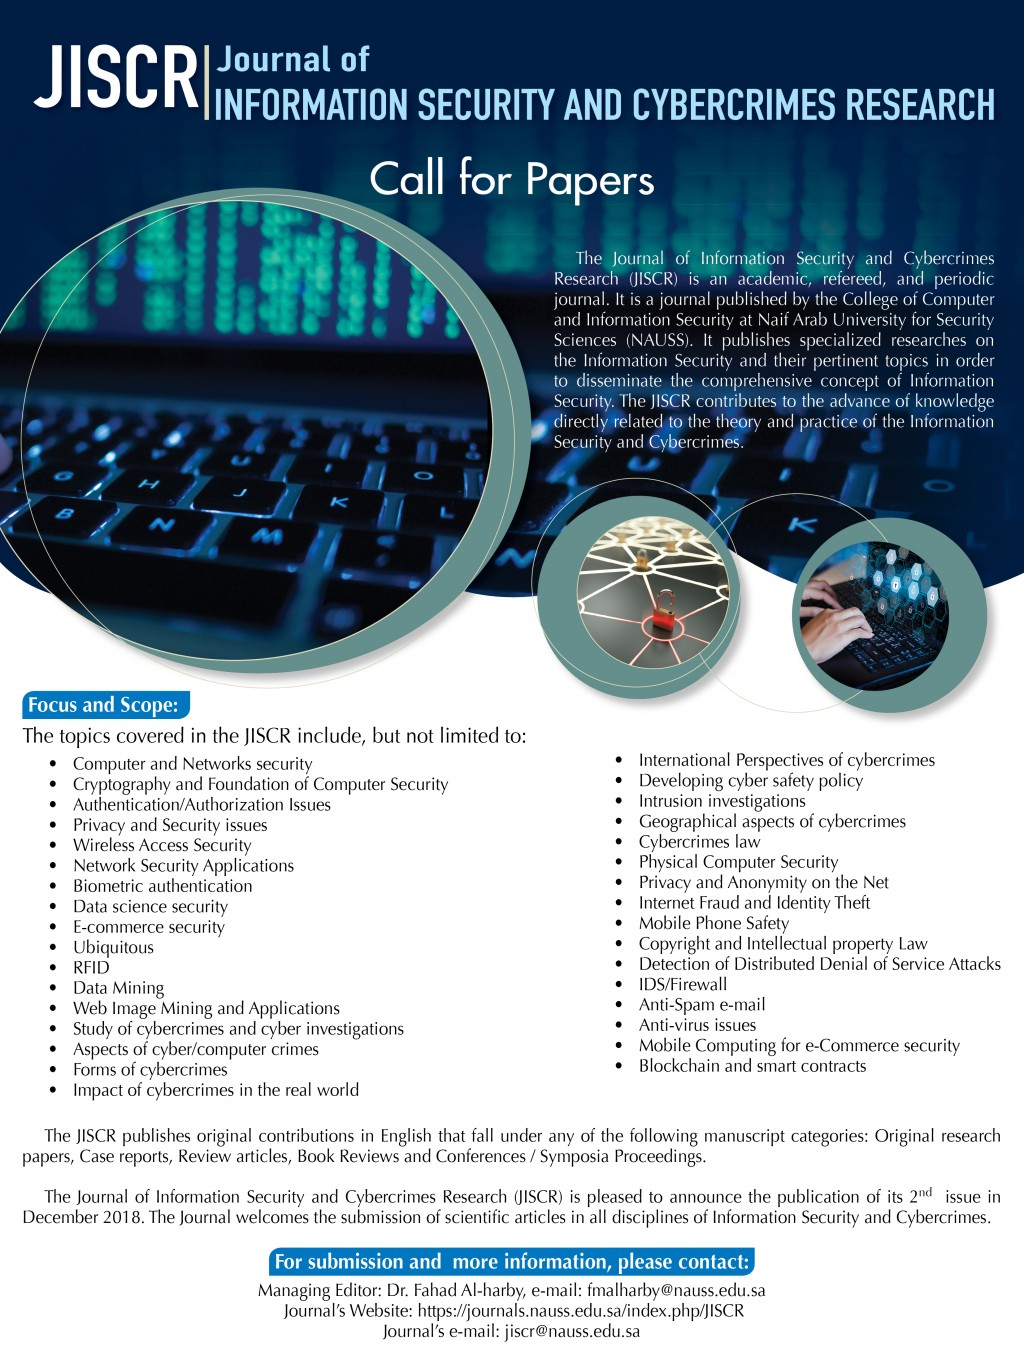 024 Call For December Cyber Security Research Dreaded Paper Papers 2018 Pdf Ieee On 2019 Large